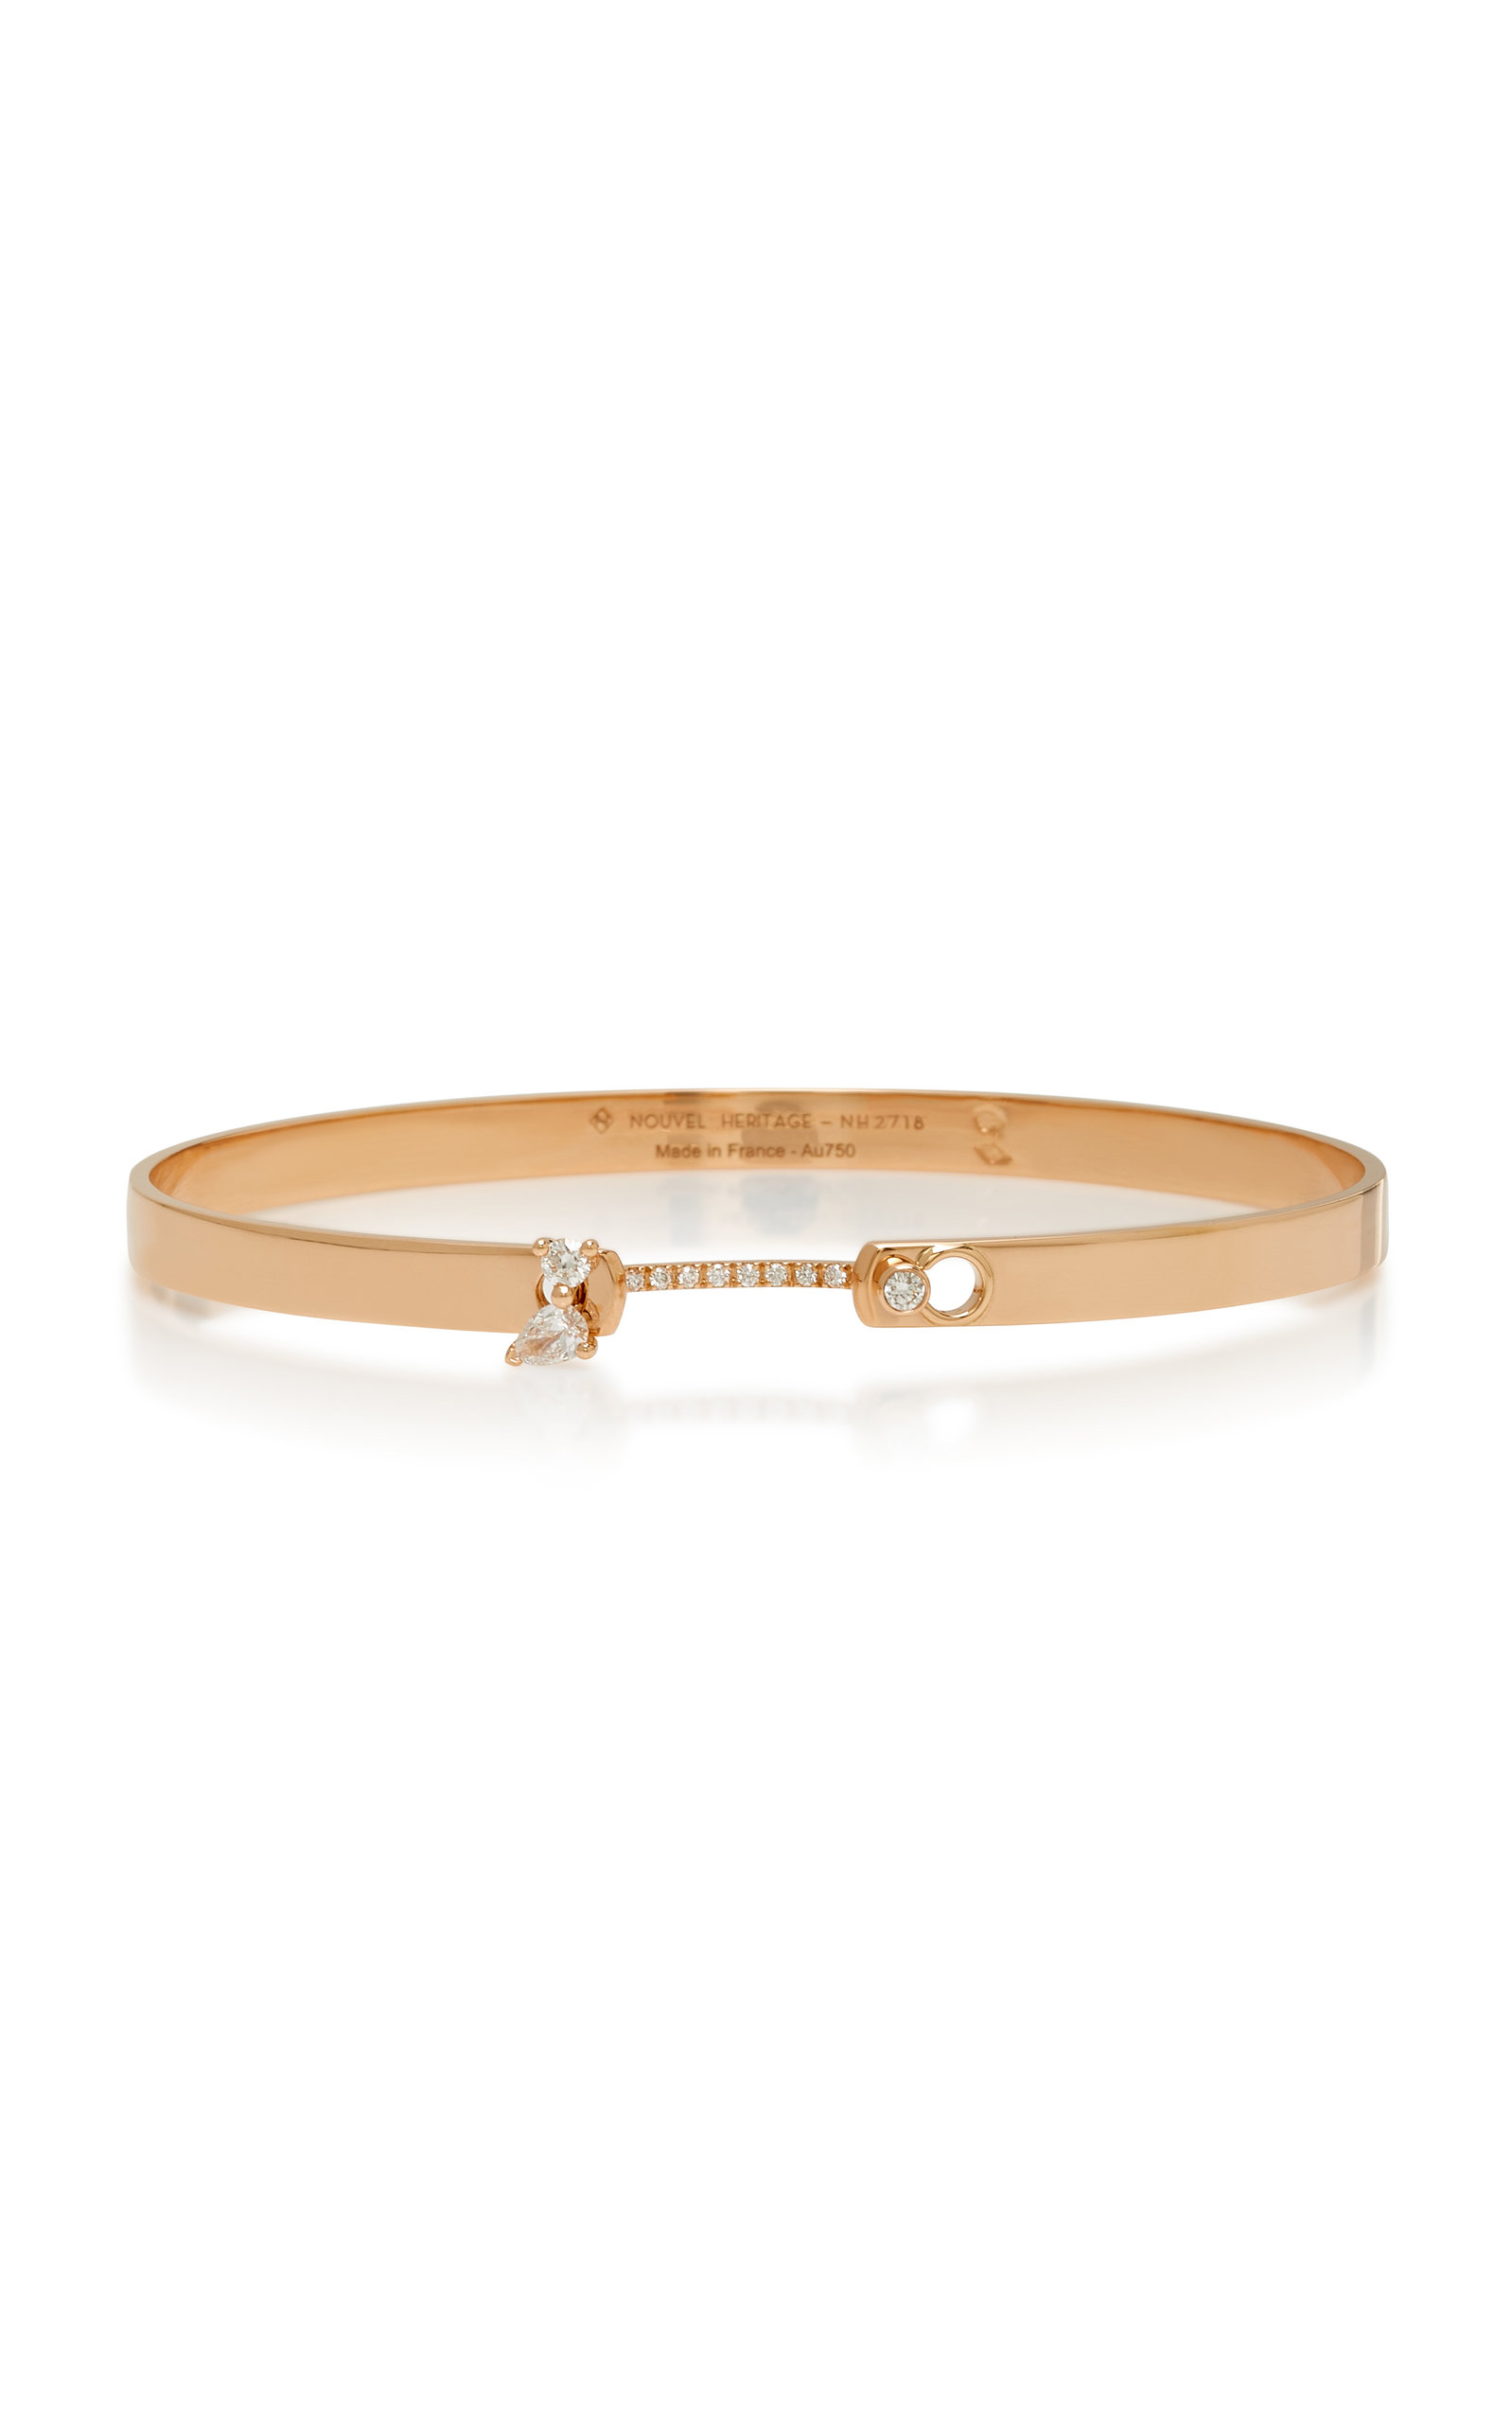 NOUVEL HERITAGE COCKTAIL TIME 18K ROSE GOLD DIAMOND BANGLE